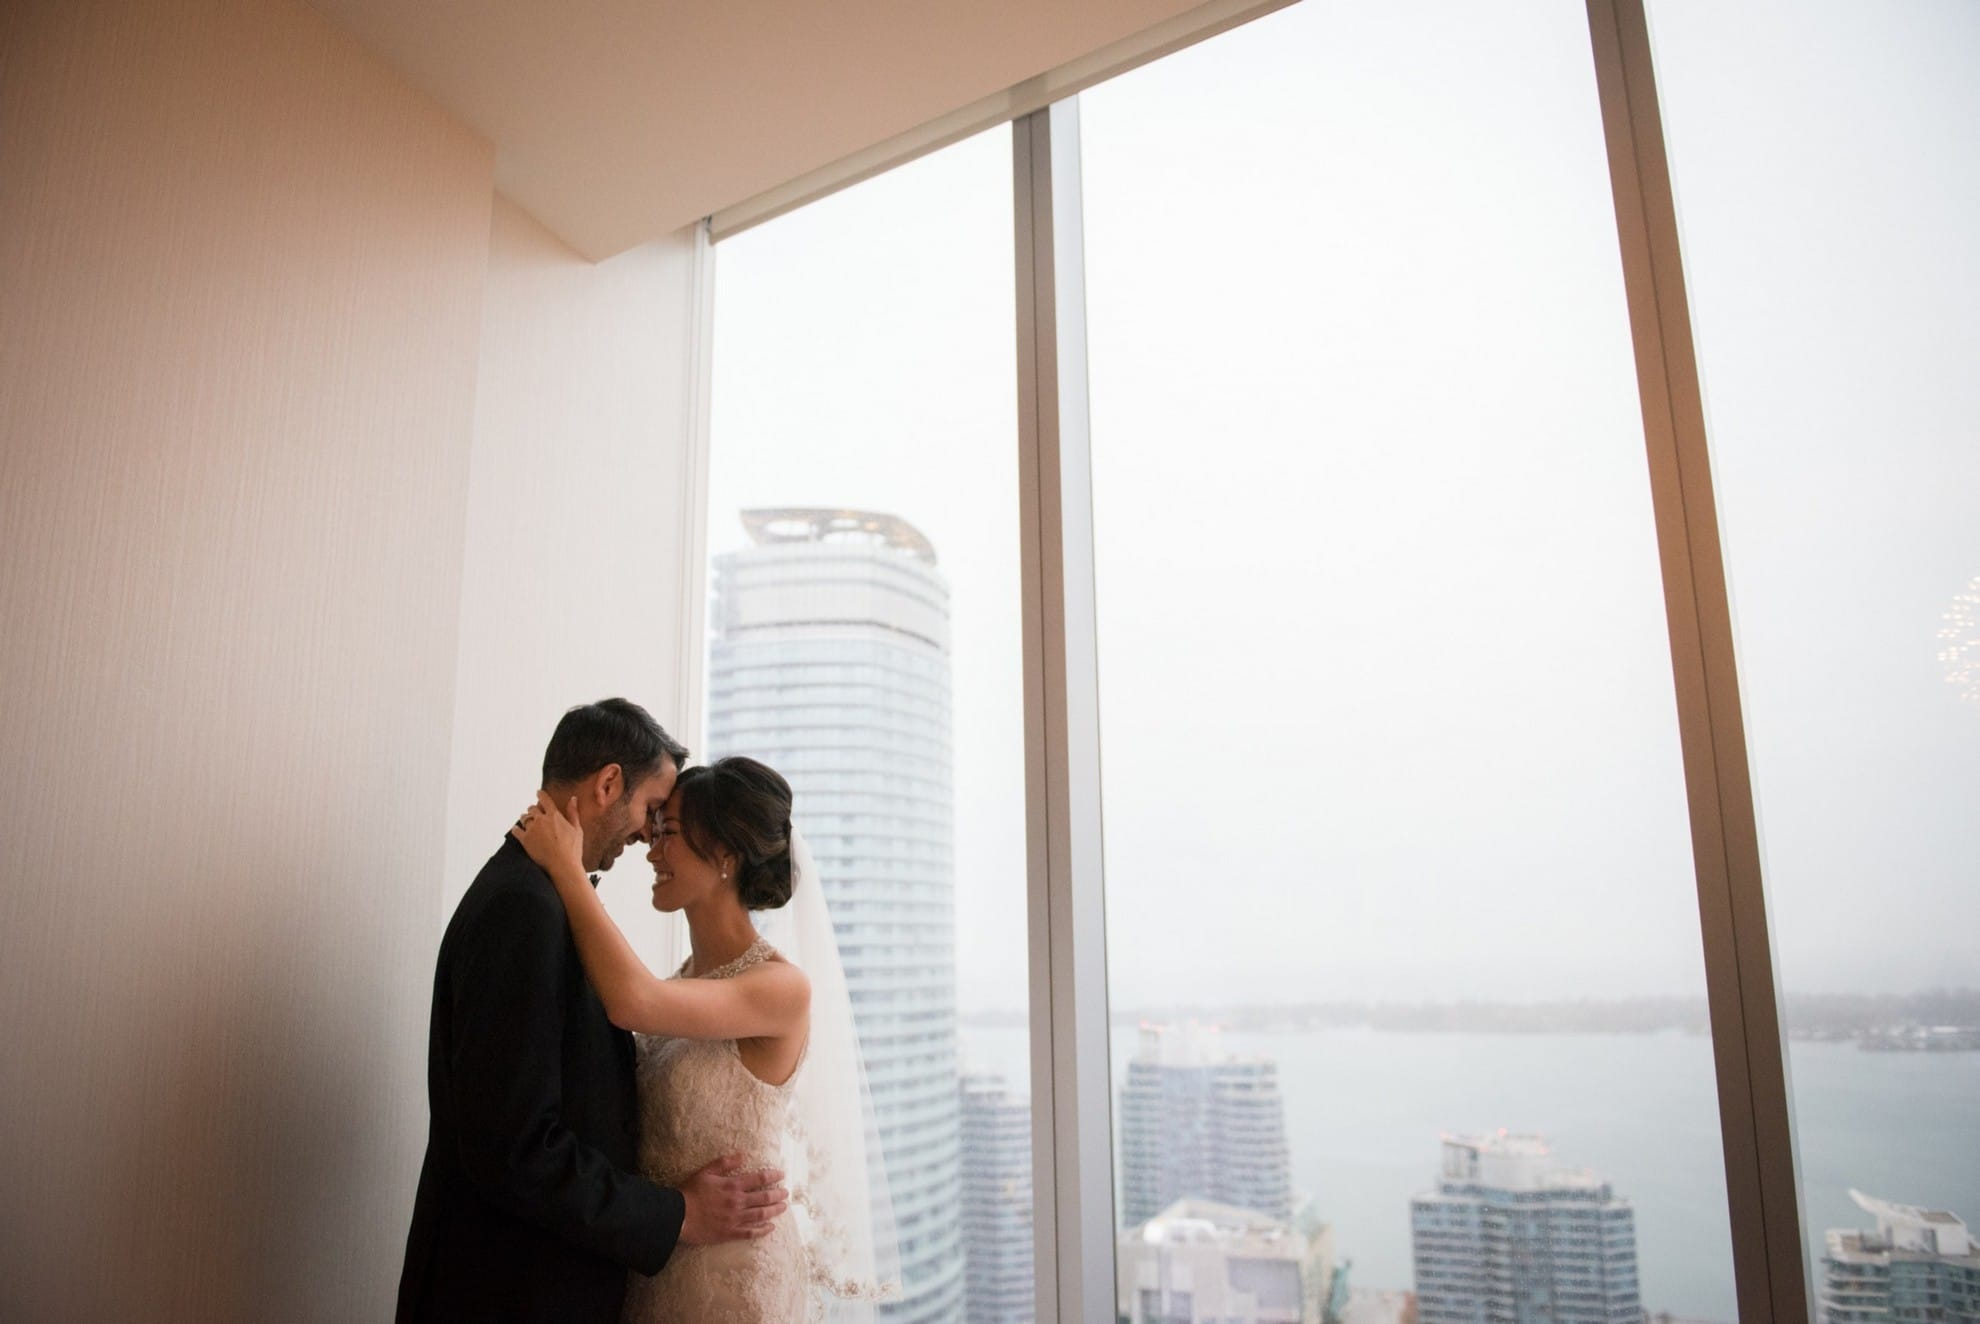 Hero image for Maggie and Shane's Big Day at Atlantis Pavilions